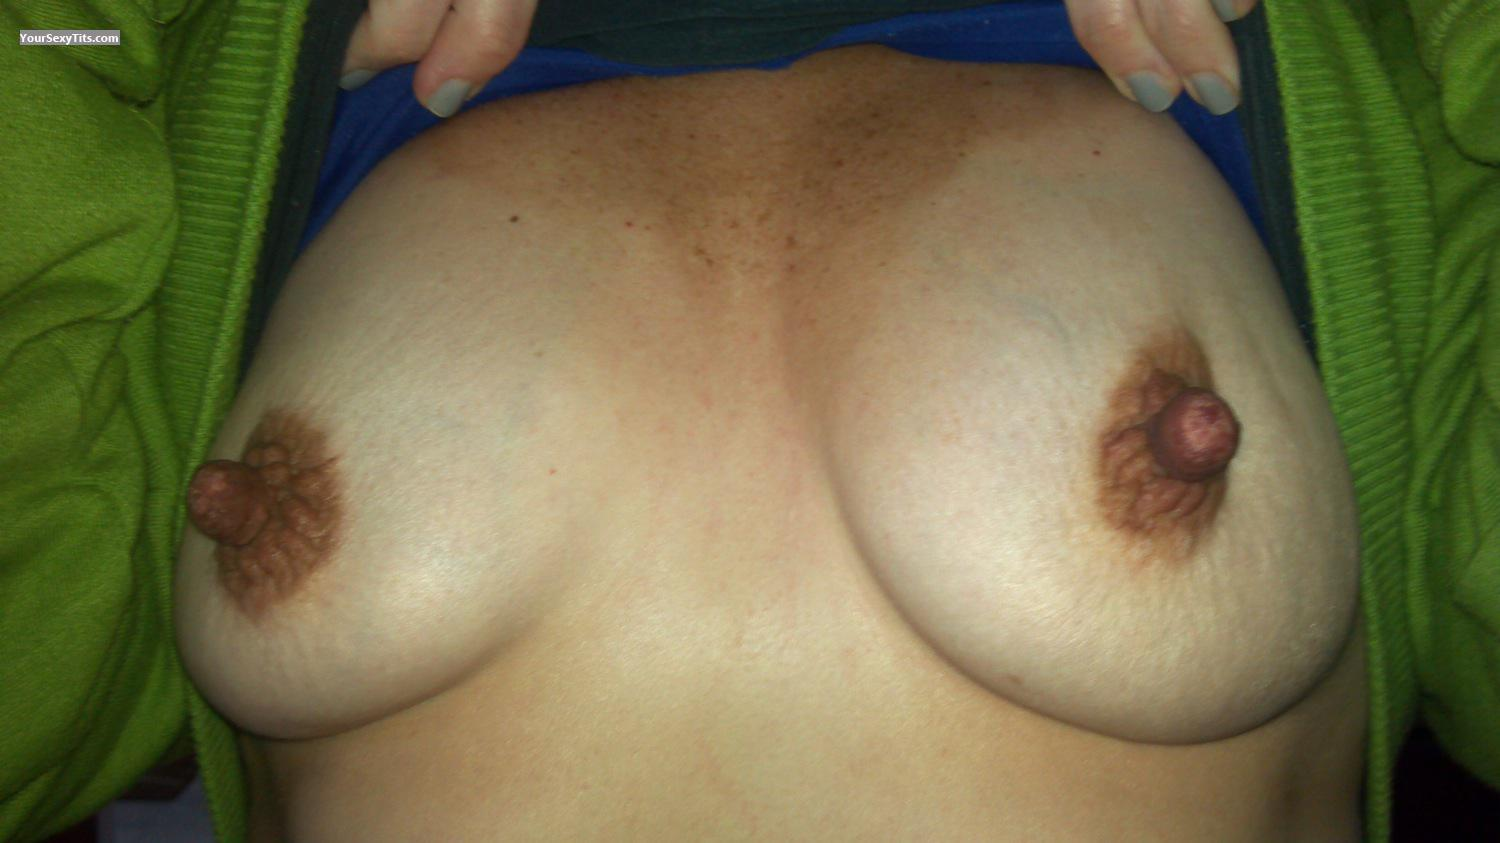 Tit Flash: Wife's Small Tits - GreatNips69 from United States